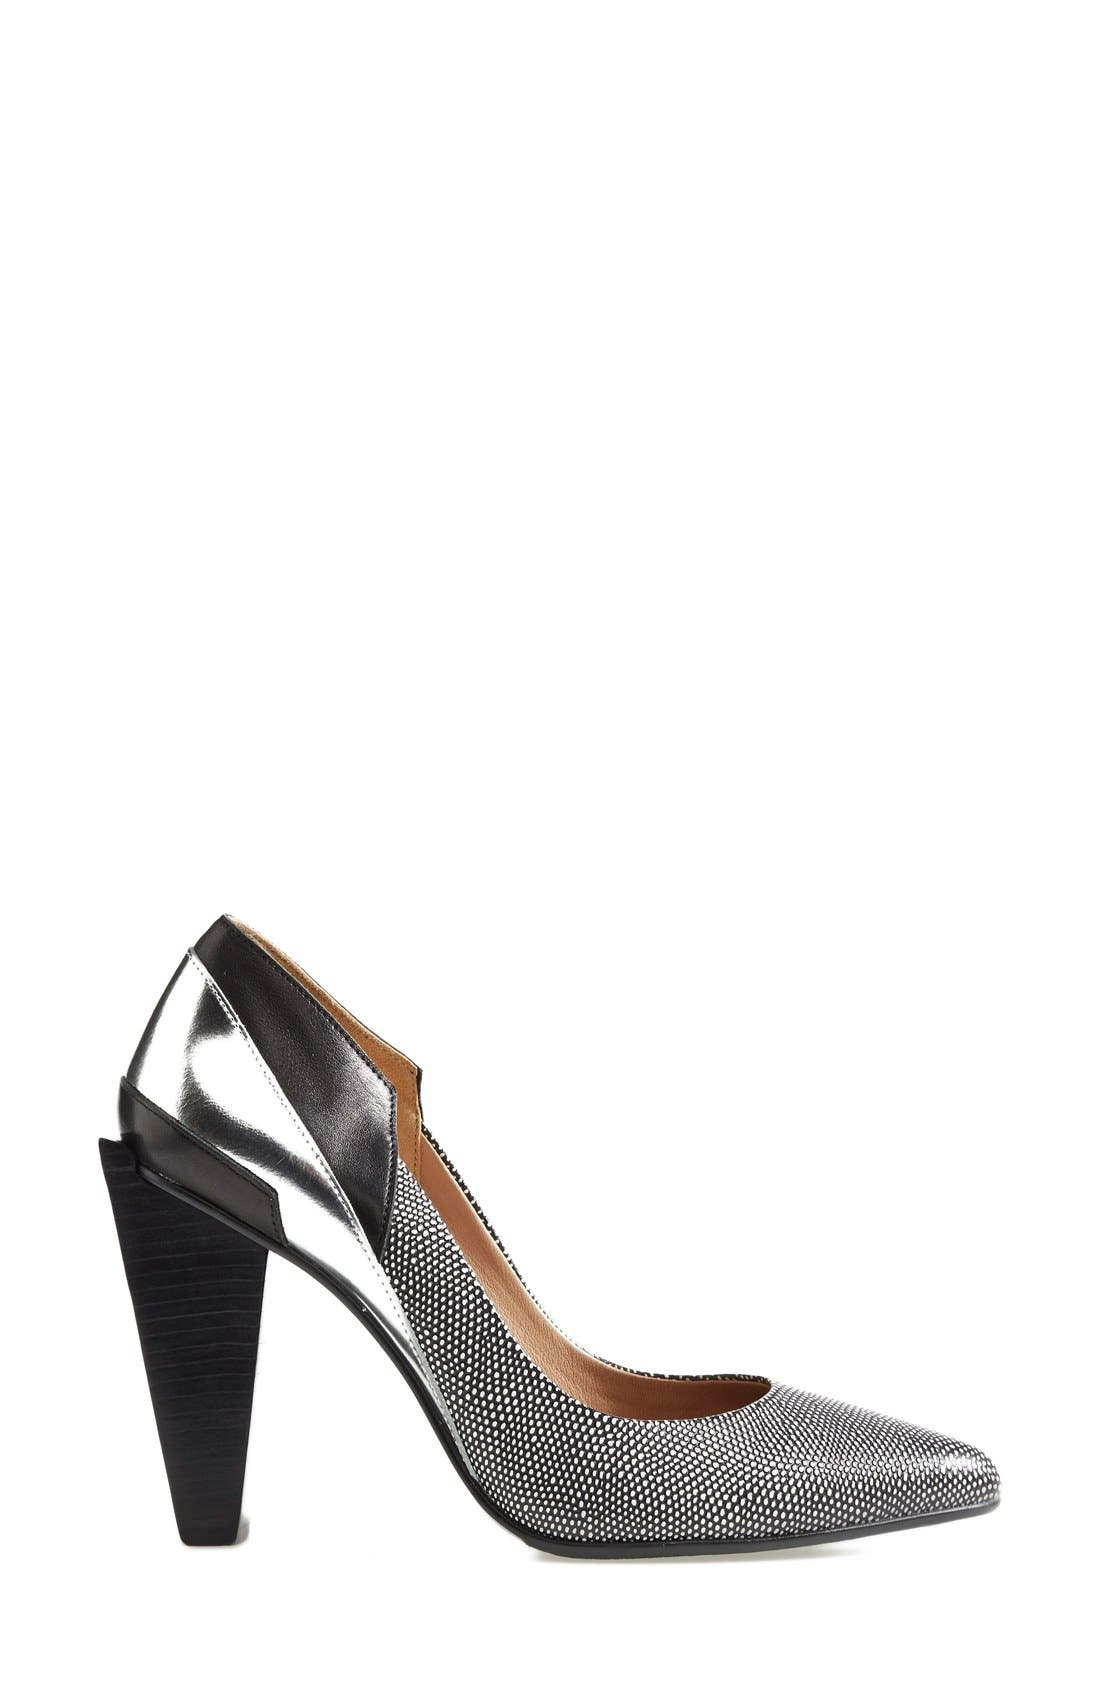 UNITED NUDE COLLECTION,                             'Ruby Hi' Pump,                             Alternate thumbnail 3, color,                             006